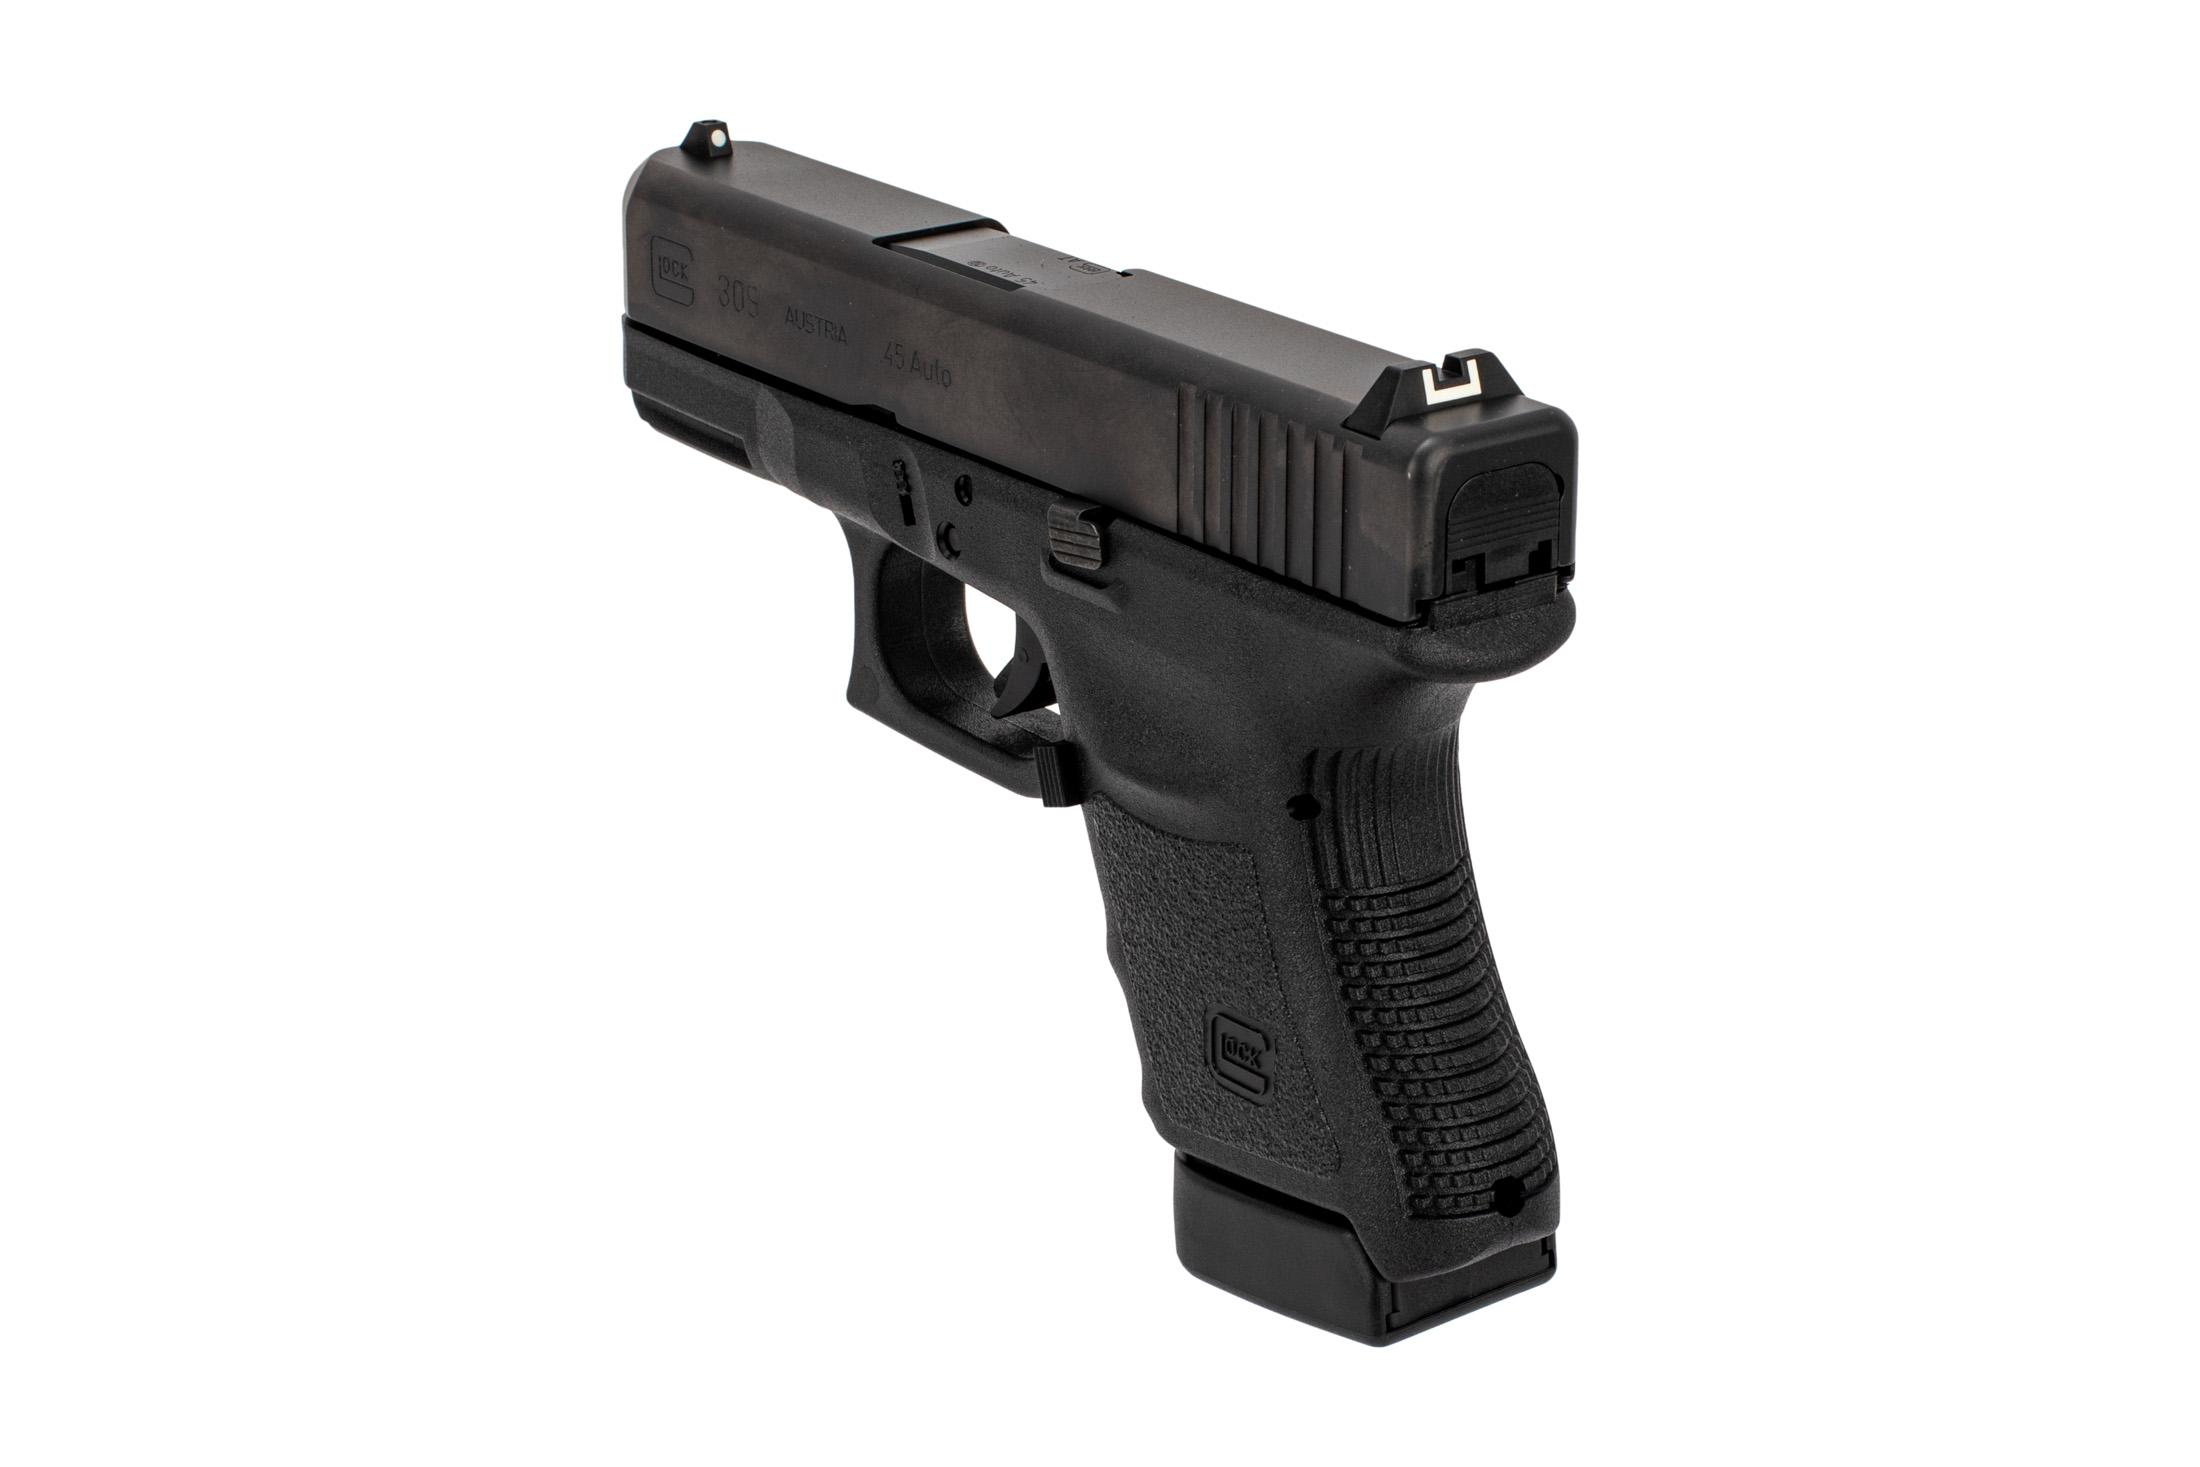 Glock .45 ACP G30 sub compact handgun with dot and bucket sights and lightweight polymer frame.